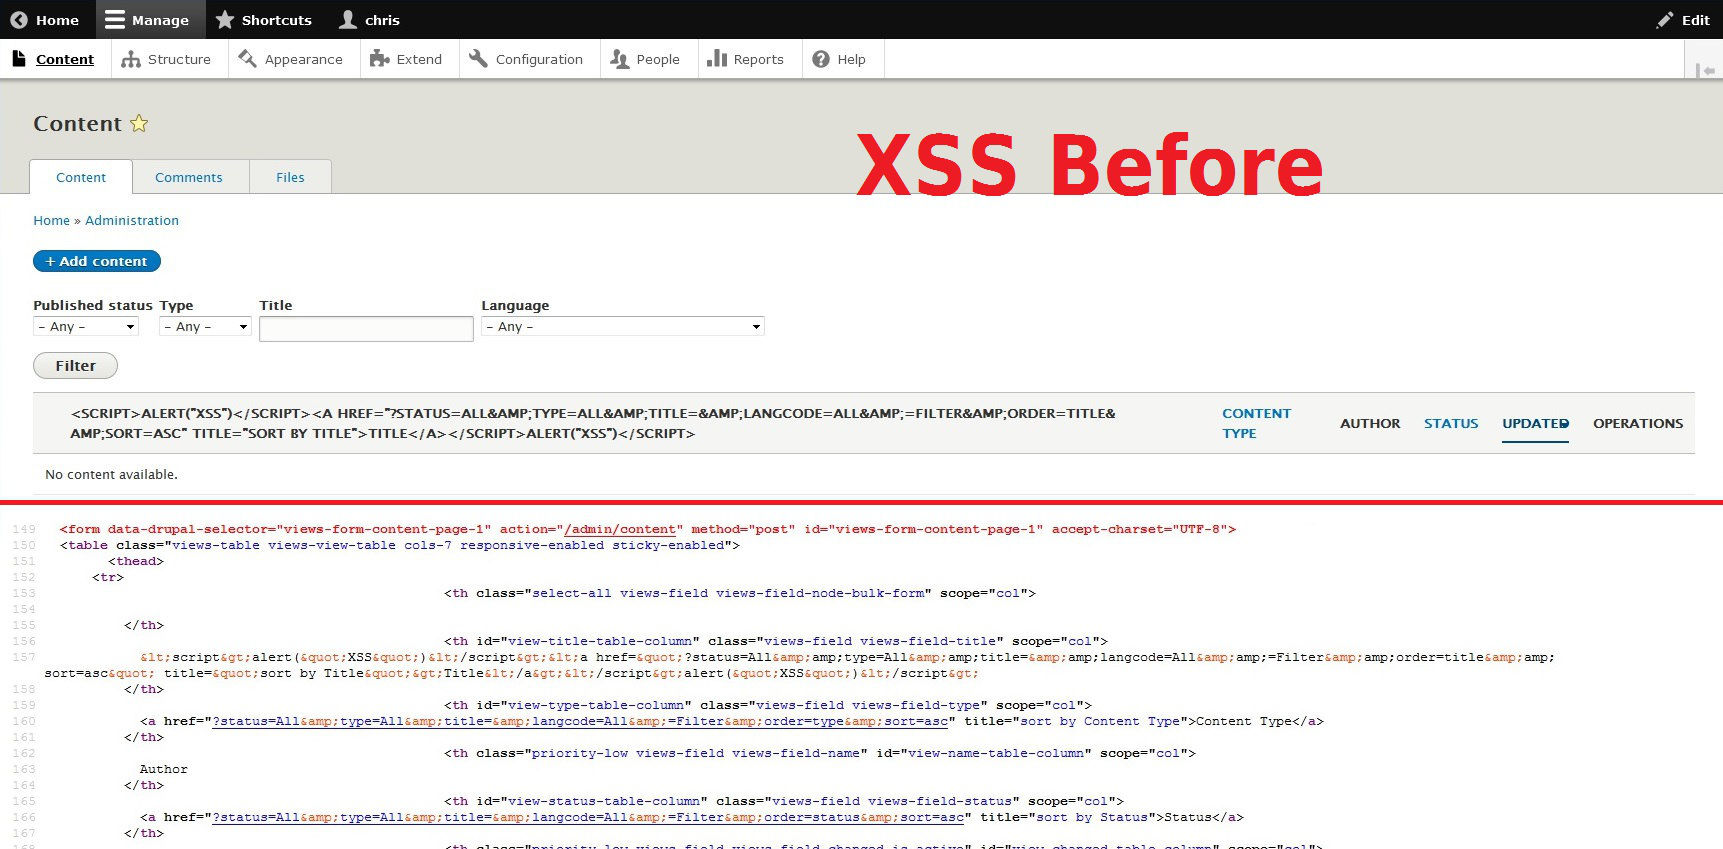 XSS Before Patch